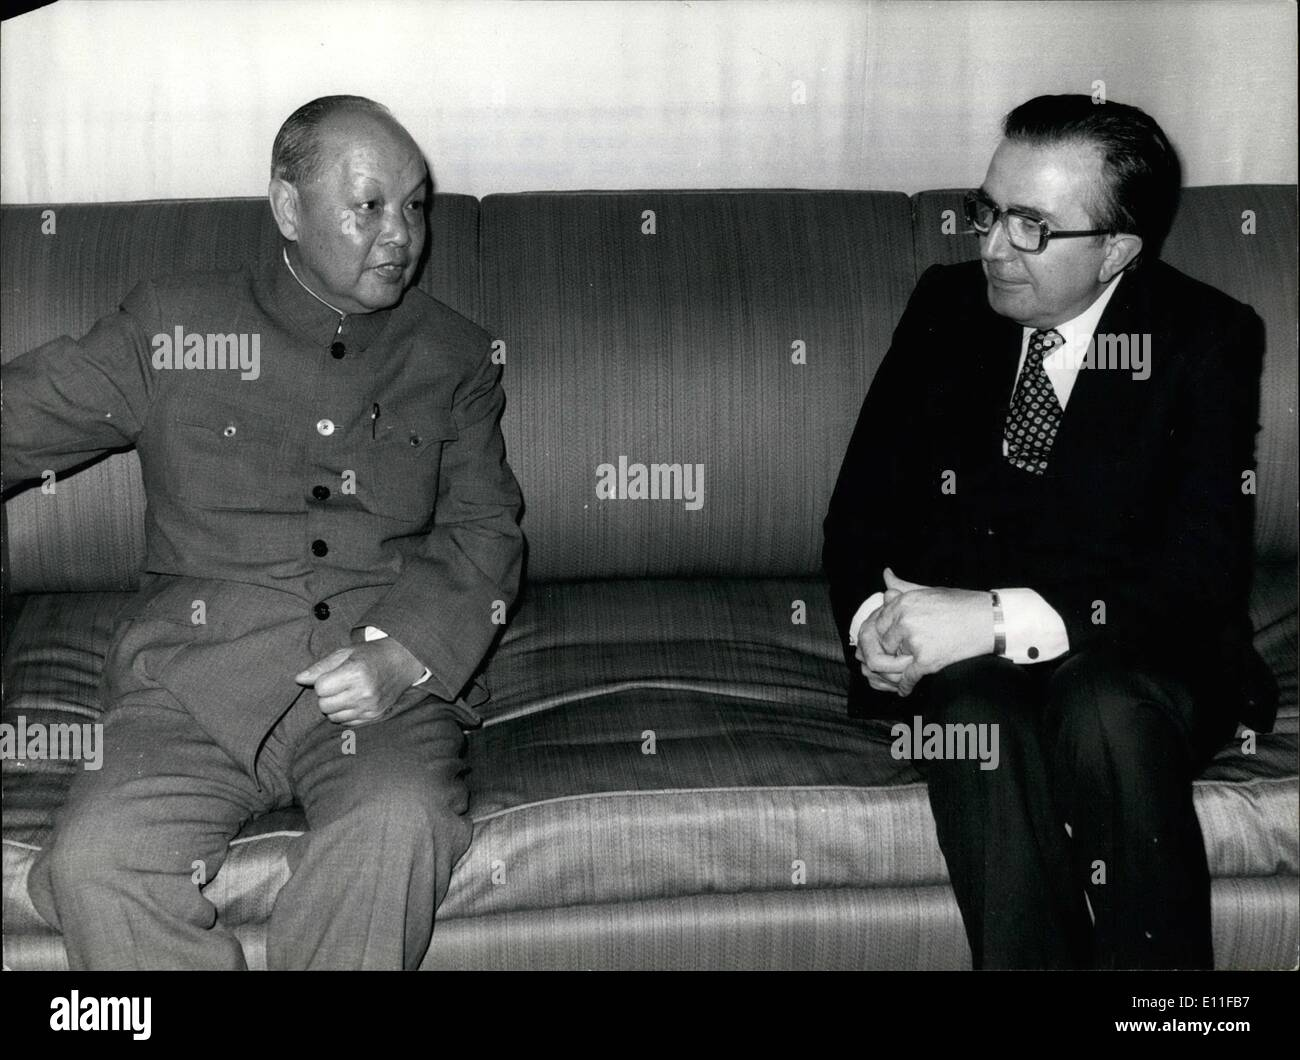 Oct. 10, 1977 - China's Postal Minister In Rome: Mr.Chung Fu-hsiang, the Minister of Post and Tell-communications of China, is paying a visit to Italy to inspect telecommunication systems and apparatus, as well as television installations. Photo shows Mr Chung Fu-hsiang in conversation with Italy's Premier Giulio Andreotti at the Palace Chigi in Rome. - Stock Image